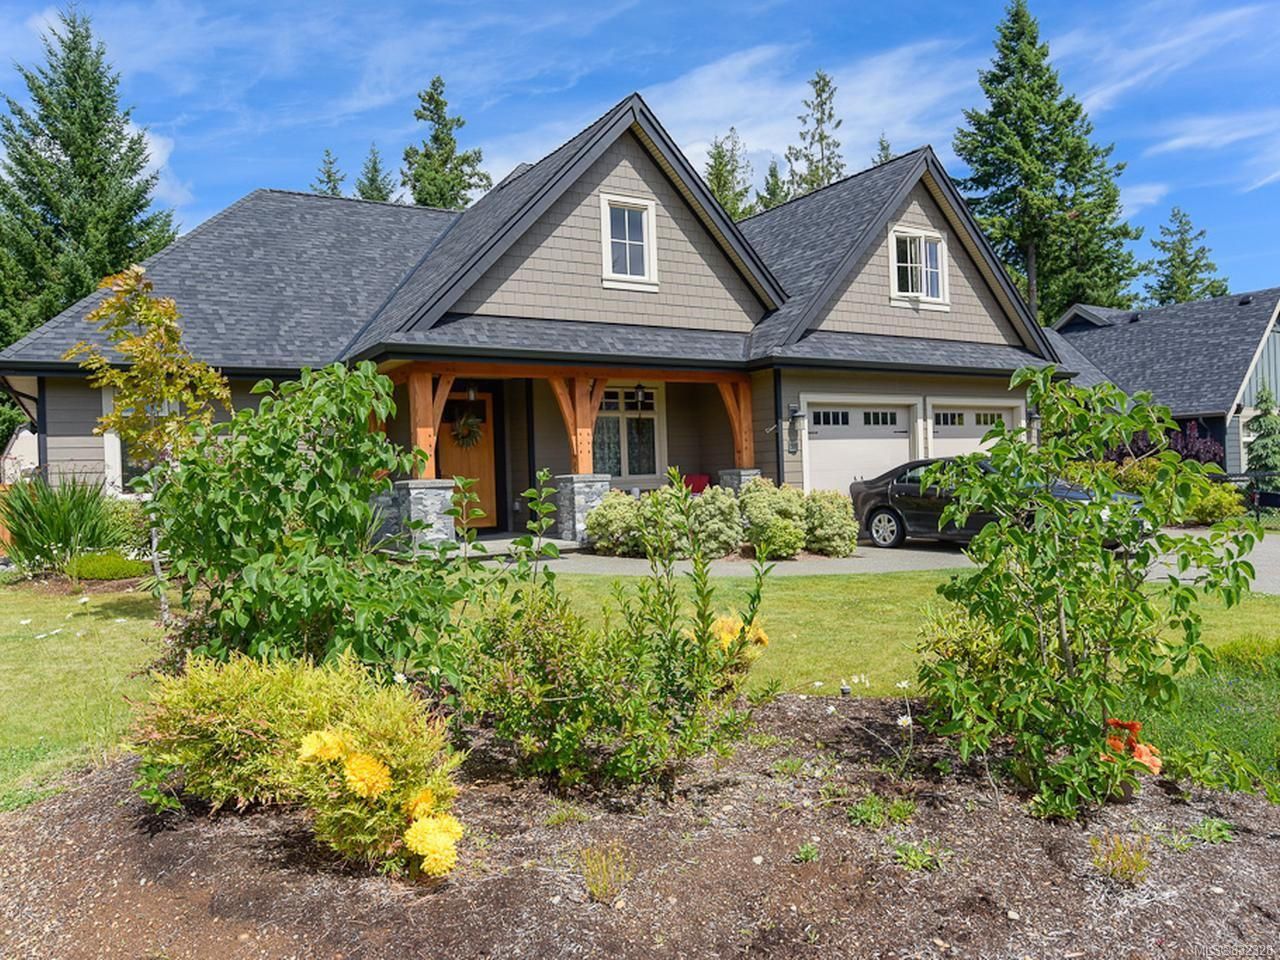 Main Photo: 2898 Cascara Cres in COURTENAY: CV Courtenay East House for sale (Comox Valley)  : MLS®# 832328